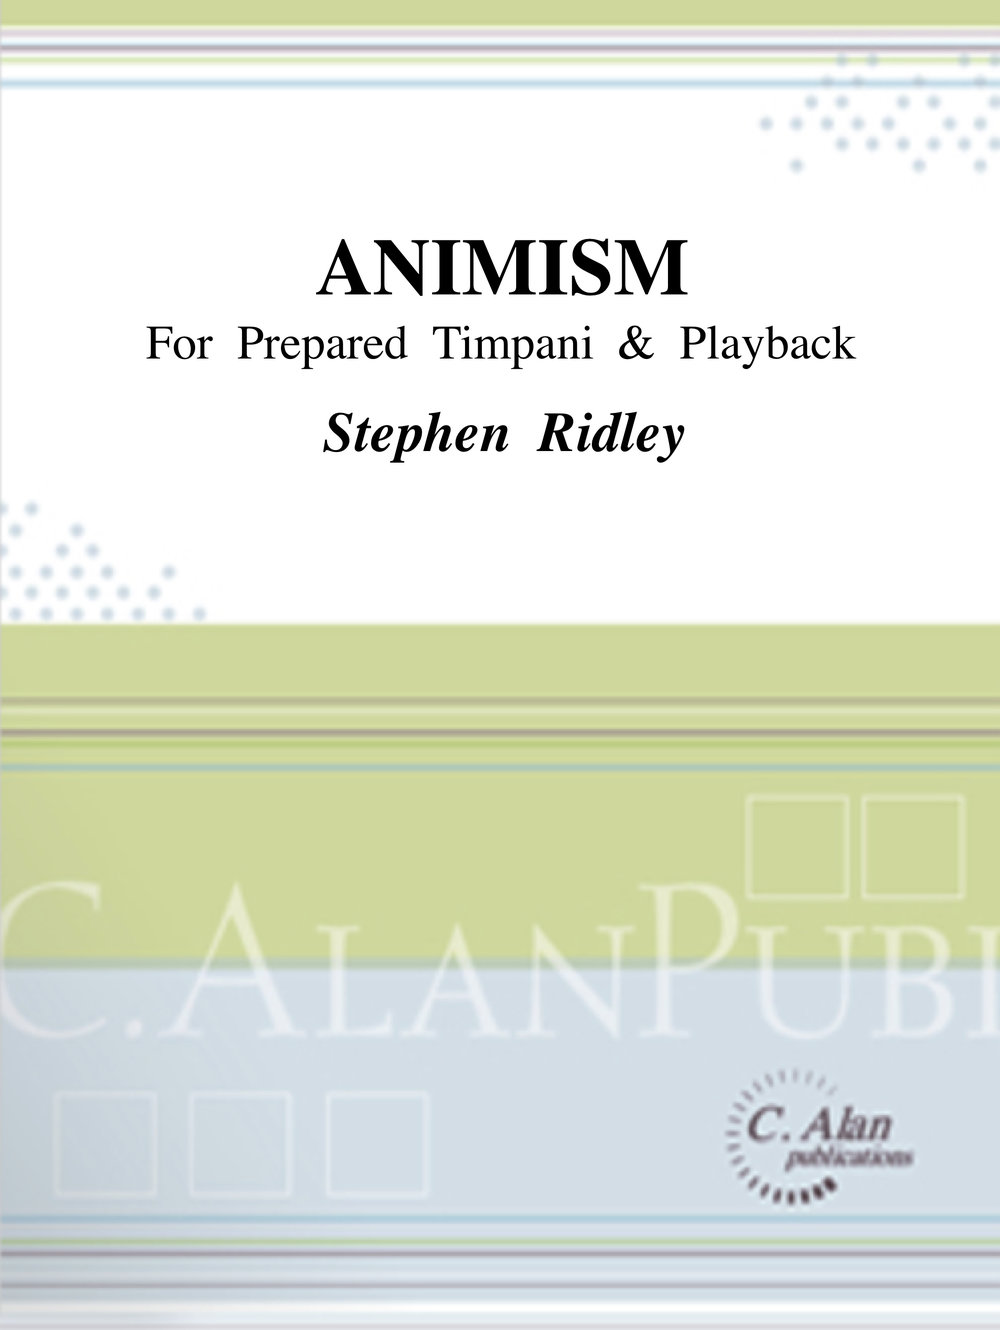 Stephen Ridley - Animism for Prepared Timpani & Playback